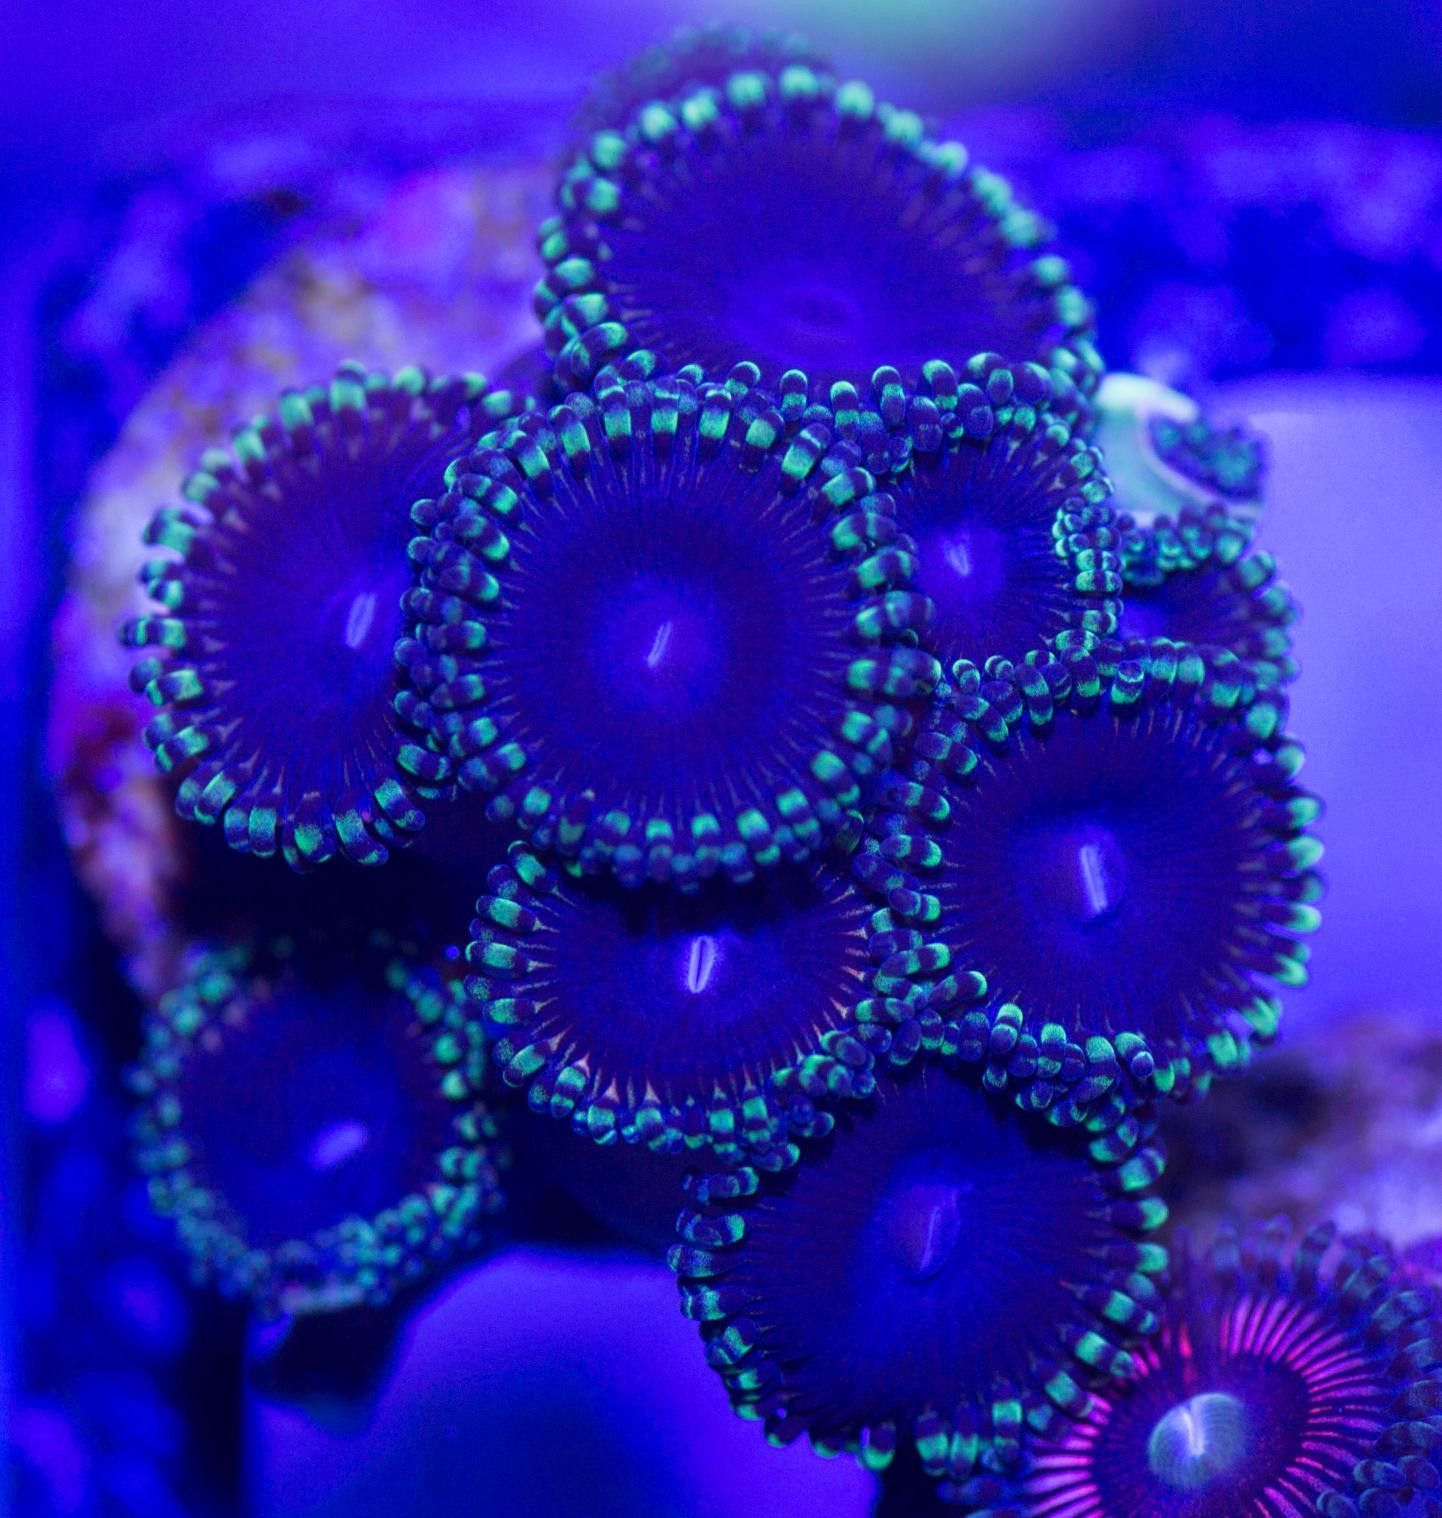 Green Rim Purple People Eater Zoa (WYSIWYG)